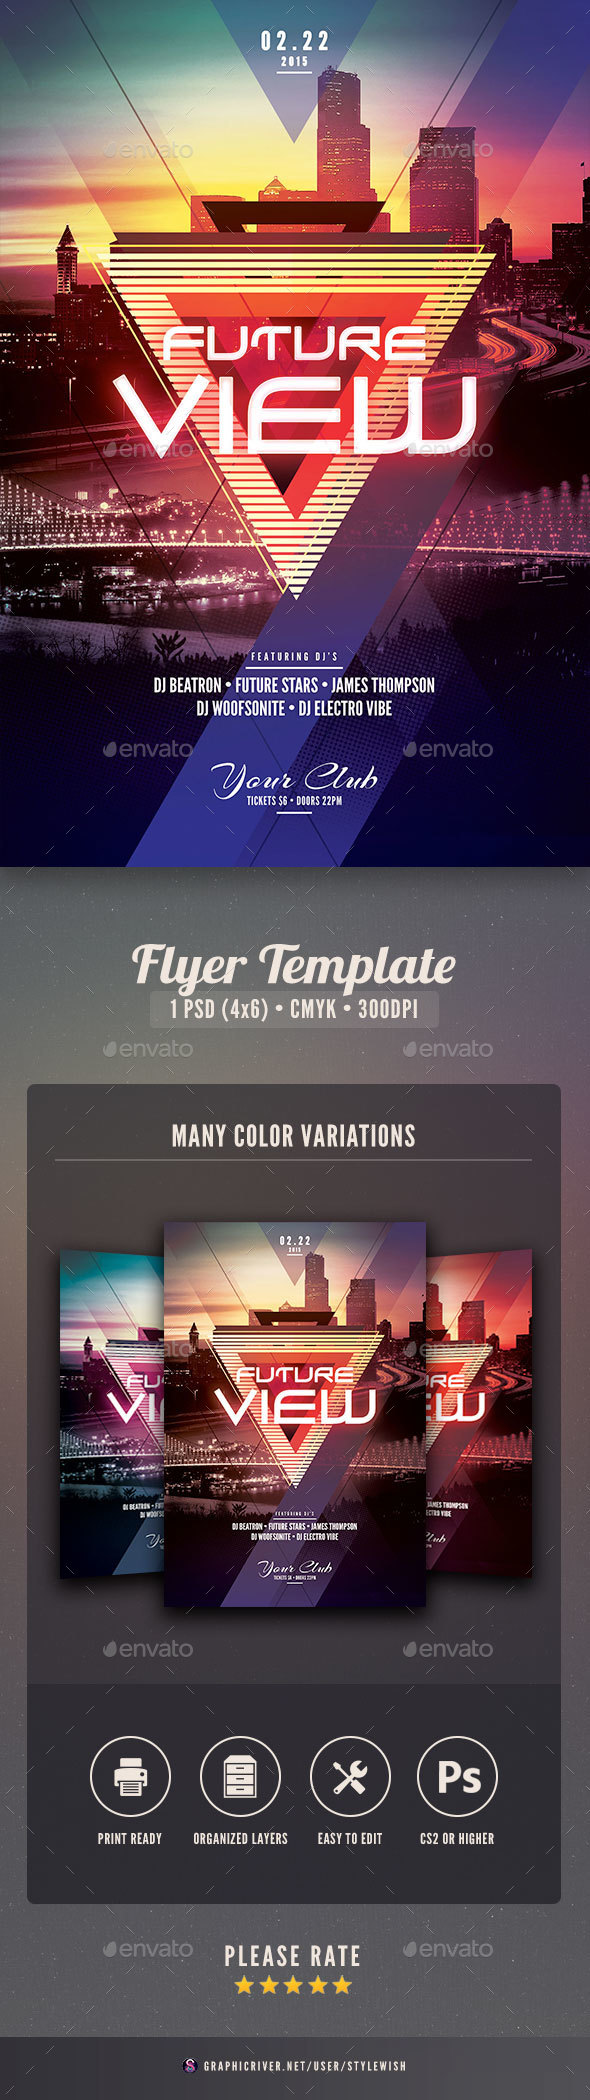 Future View Flyer - Clubs & Parties Events